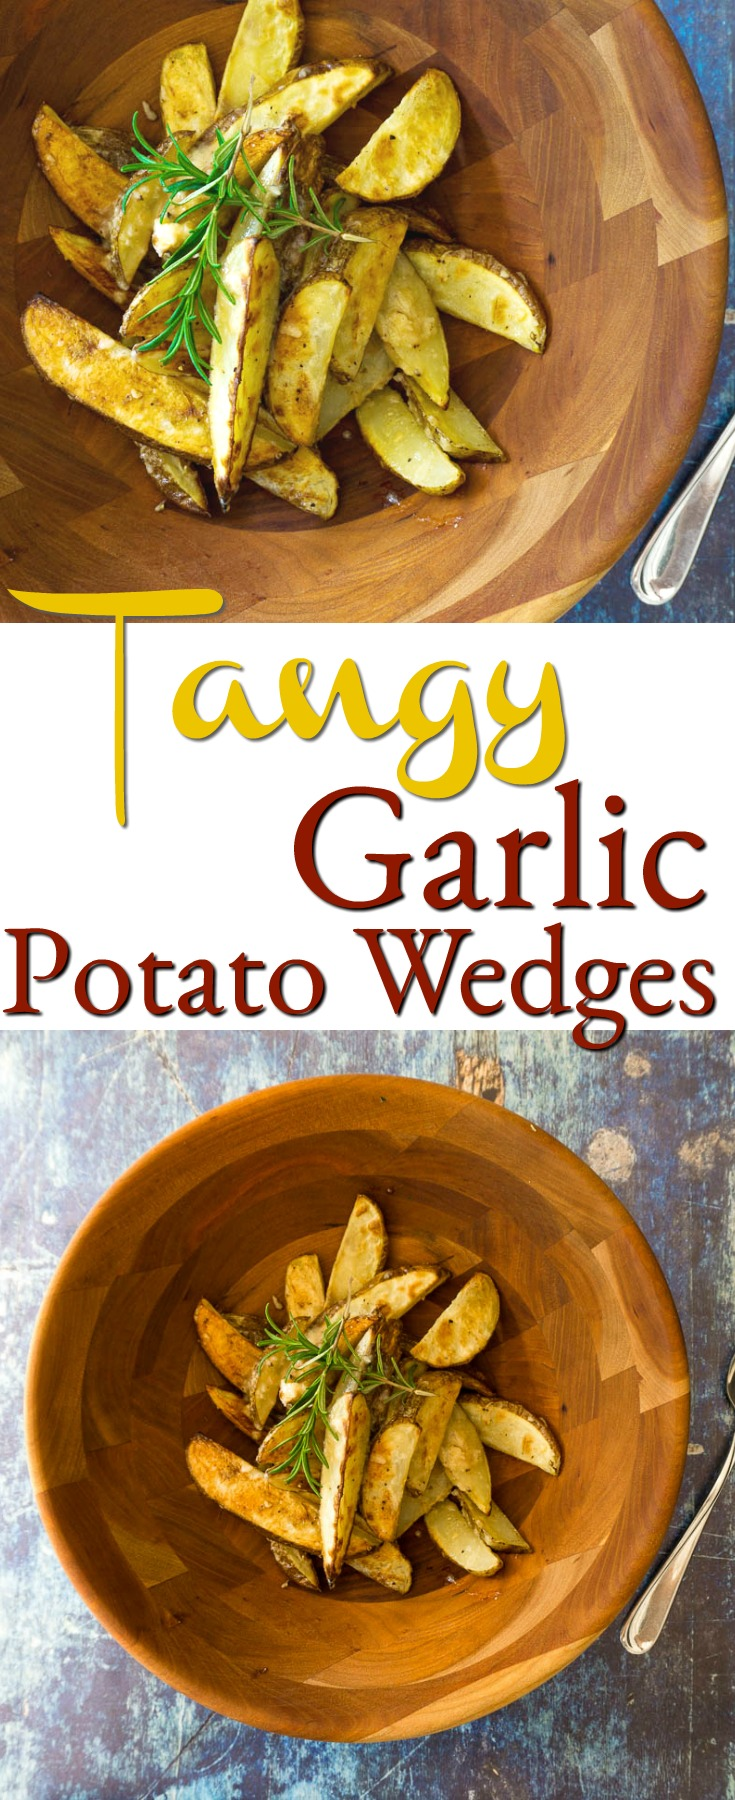 tangy garlic potato wedges